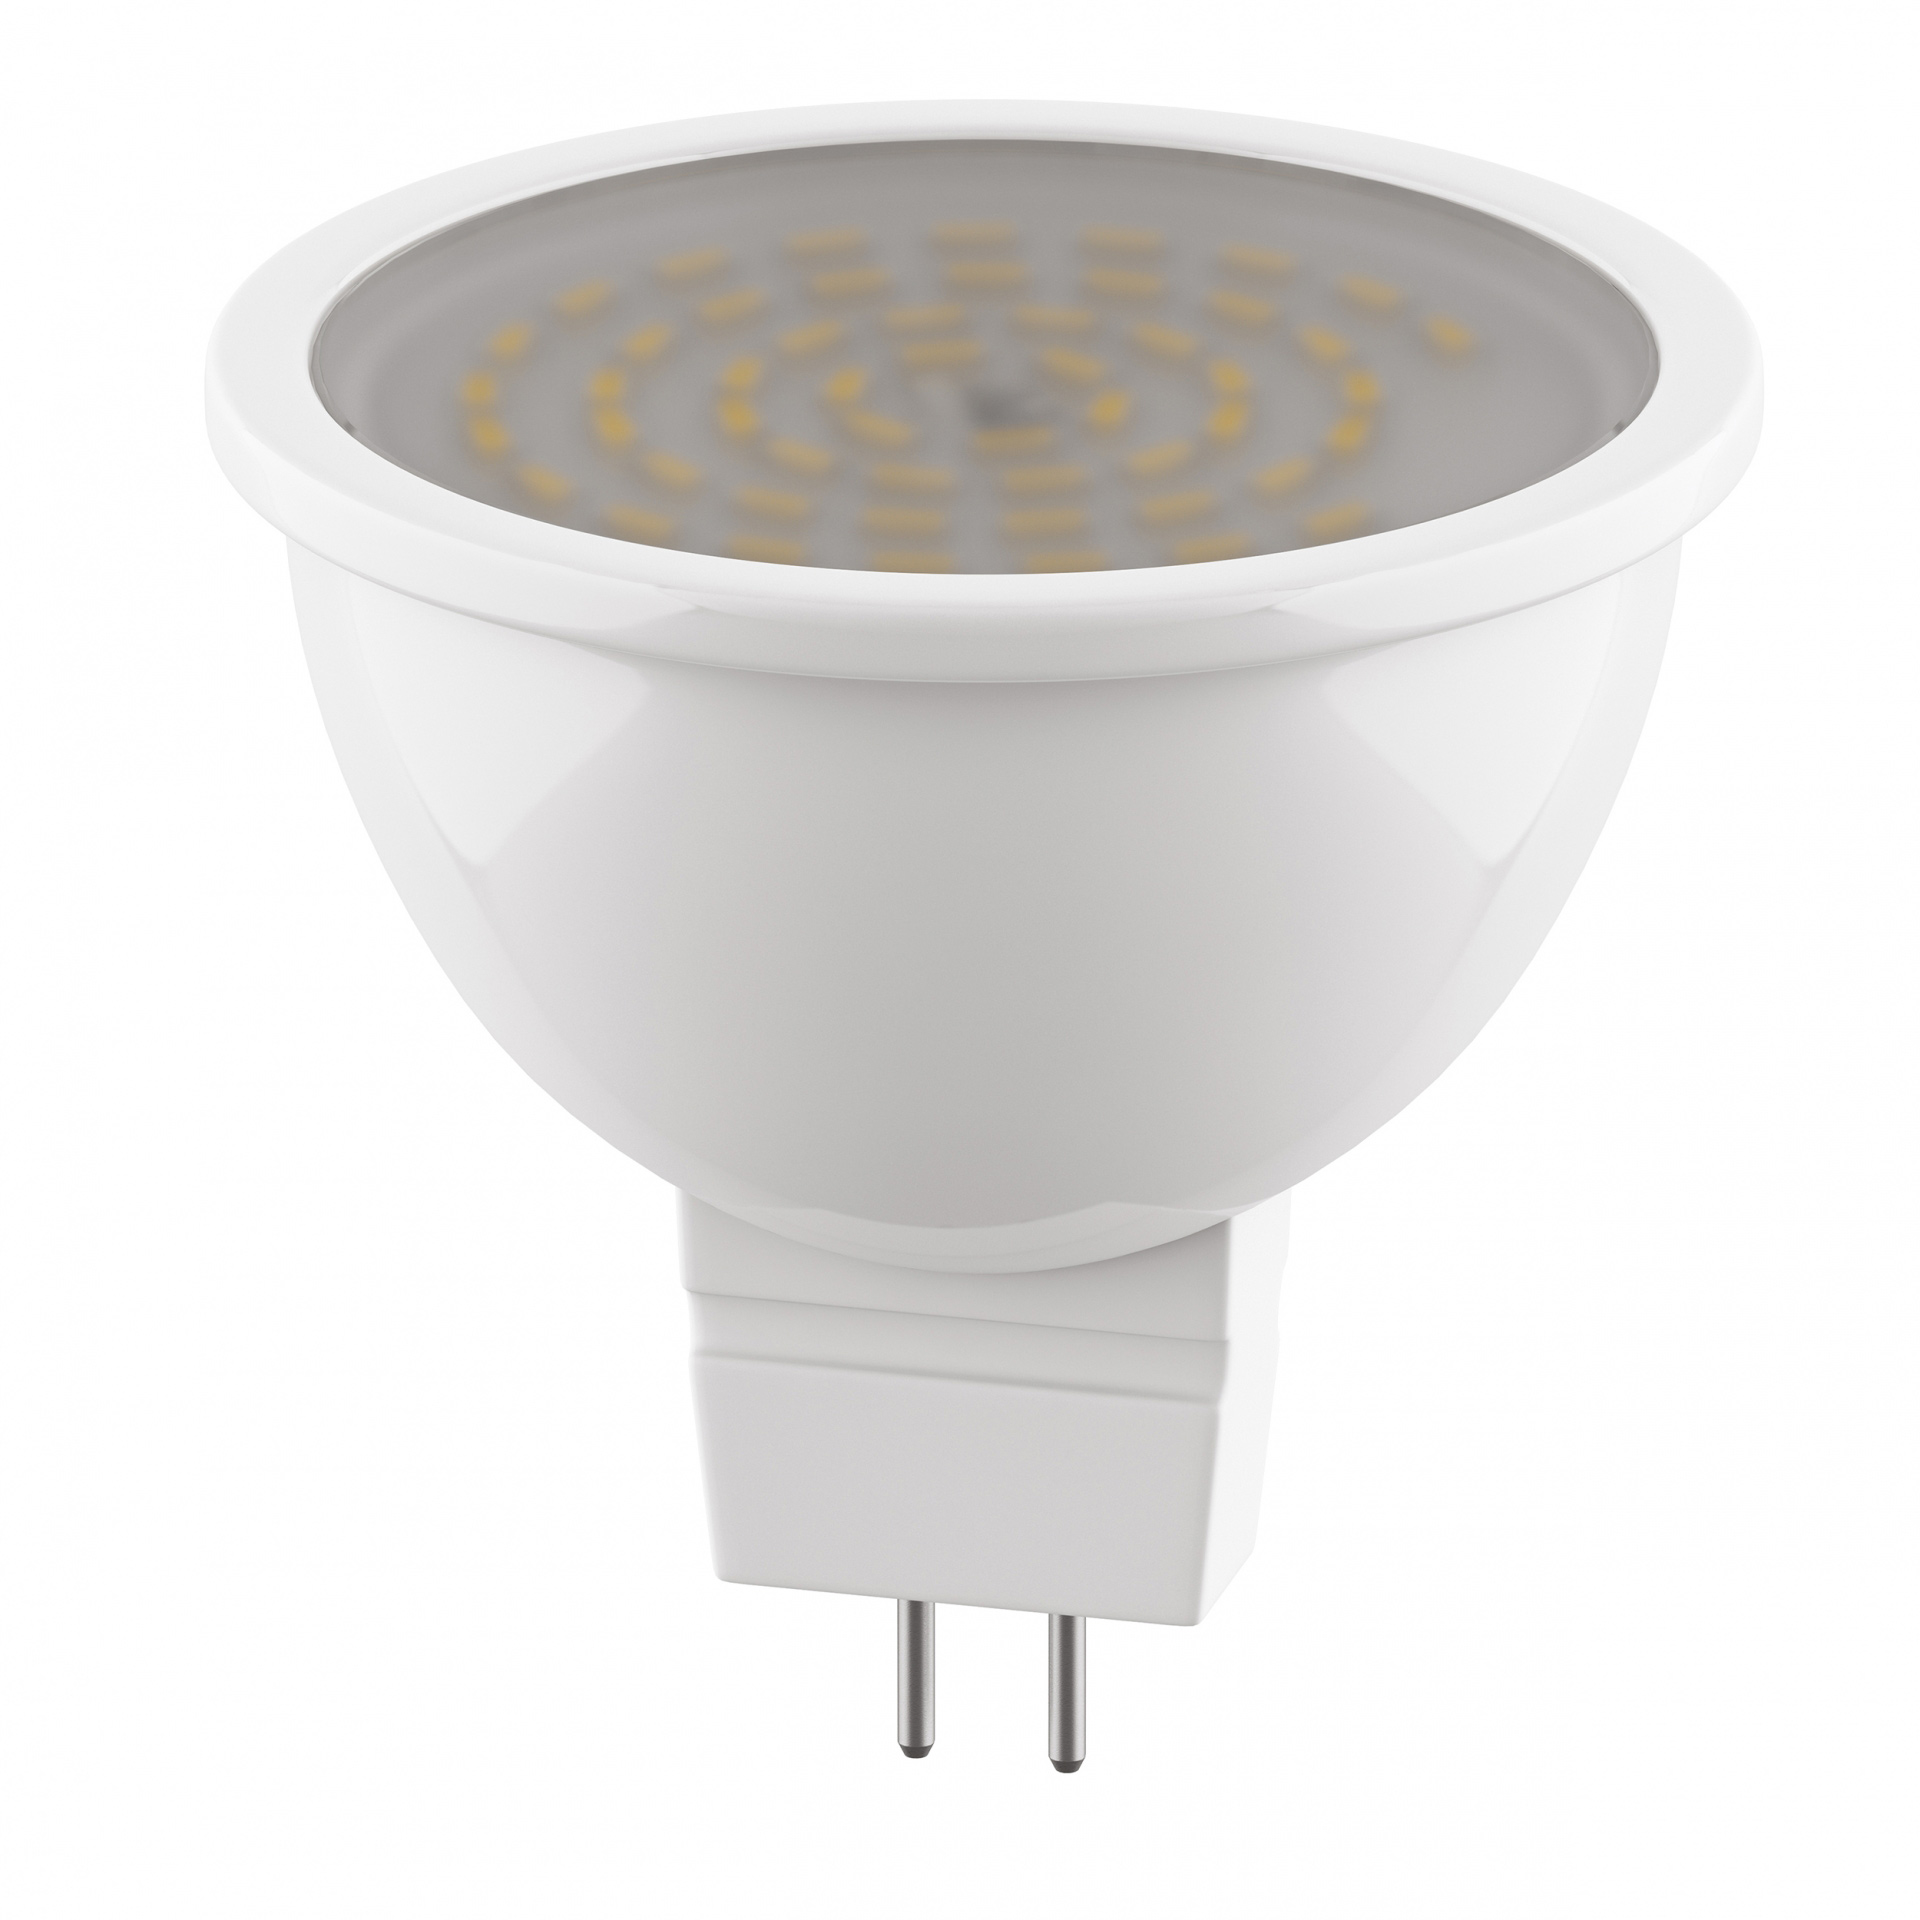 Лампа LED 220V MR16 G5.3 6.5W=60W 325LM 120G FR 3000K 20000H Lightstar 940212